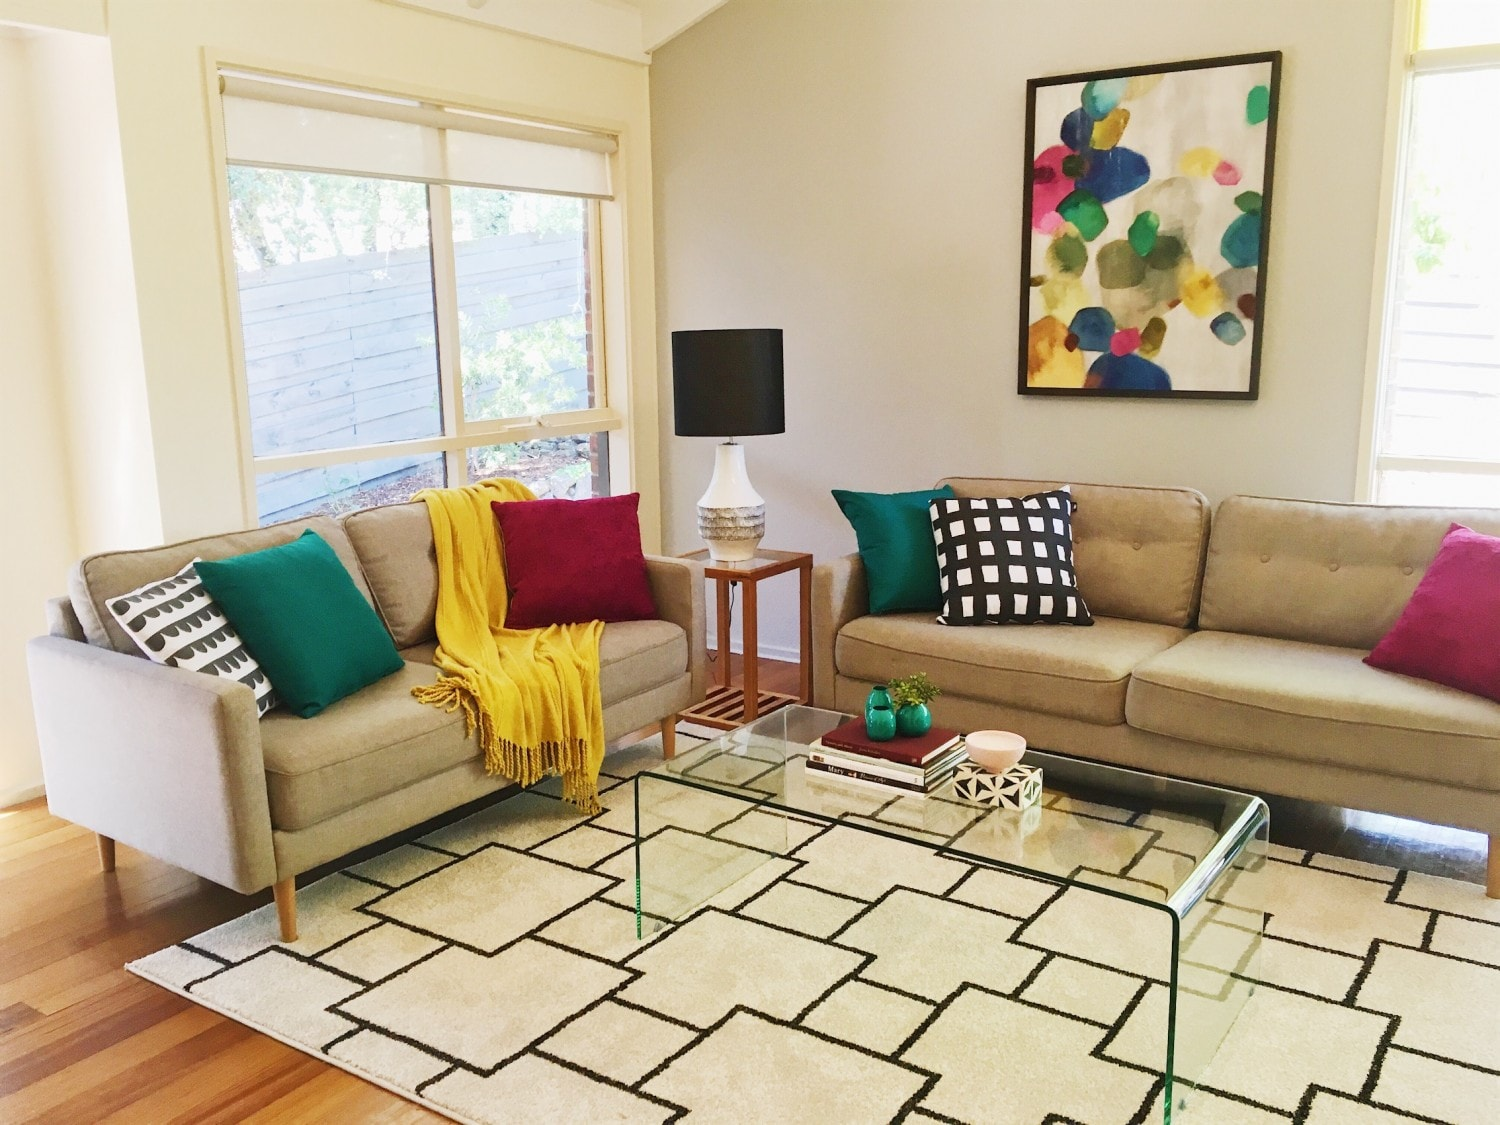 Living room with lots of colour Interior Design Melbourne Property Styling